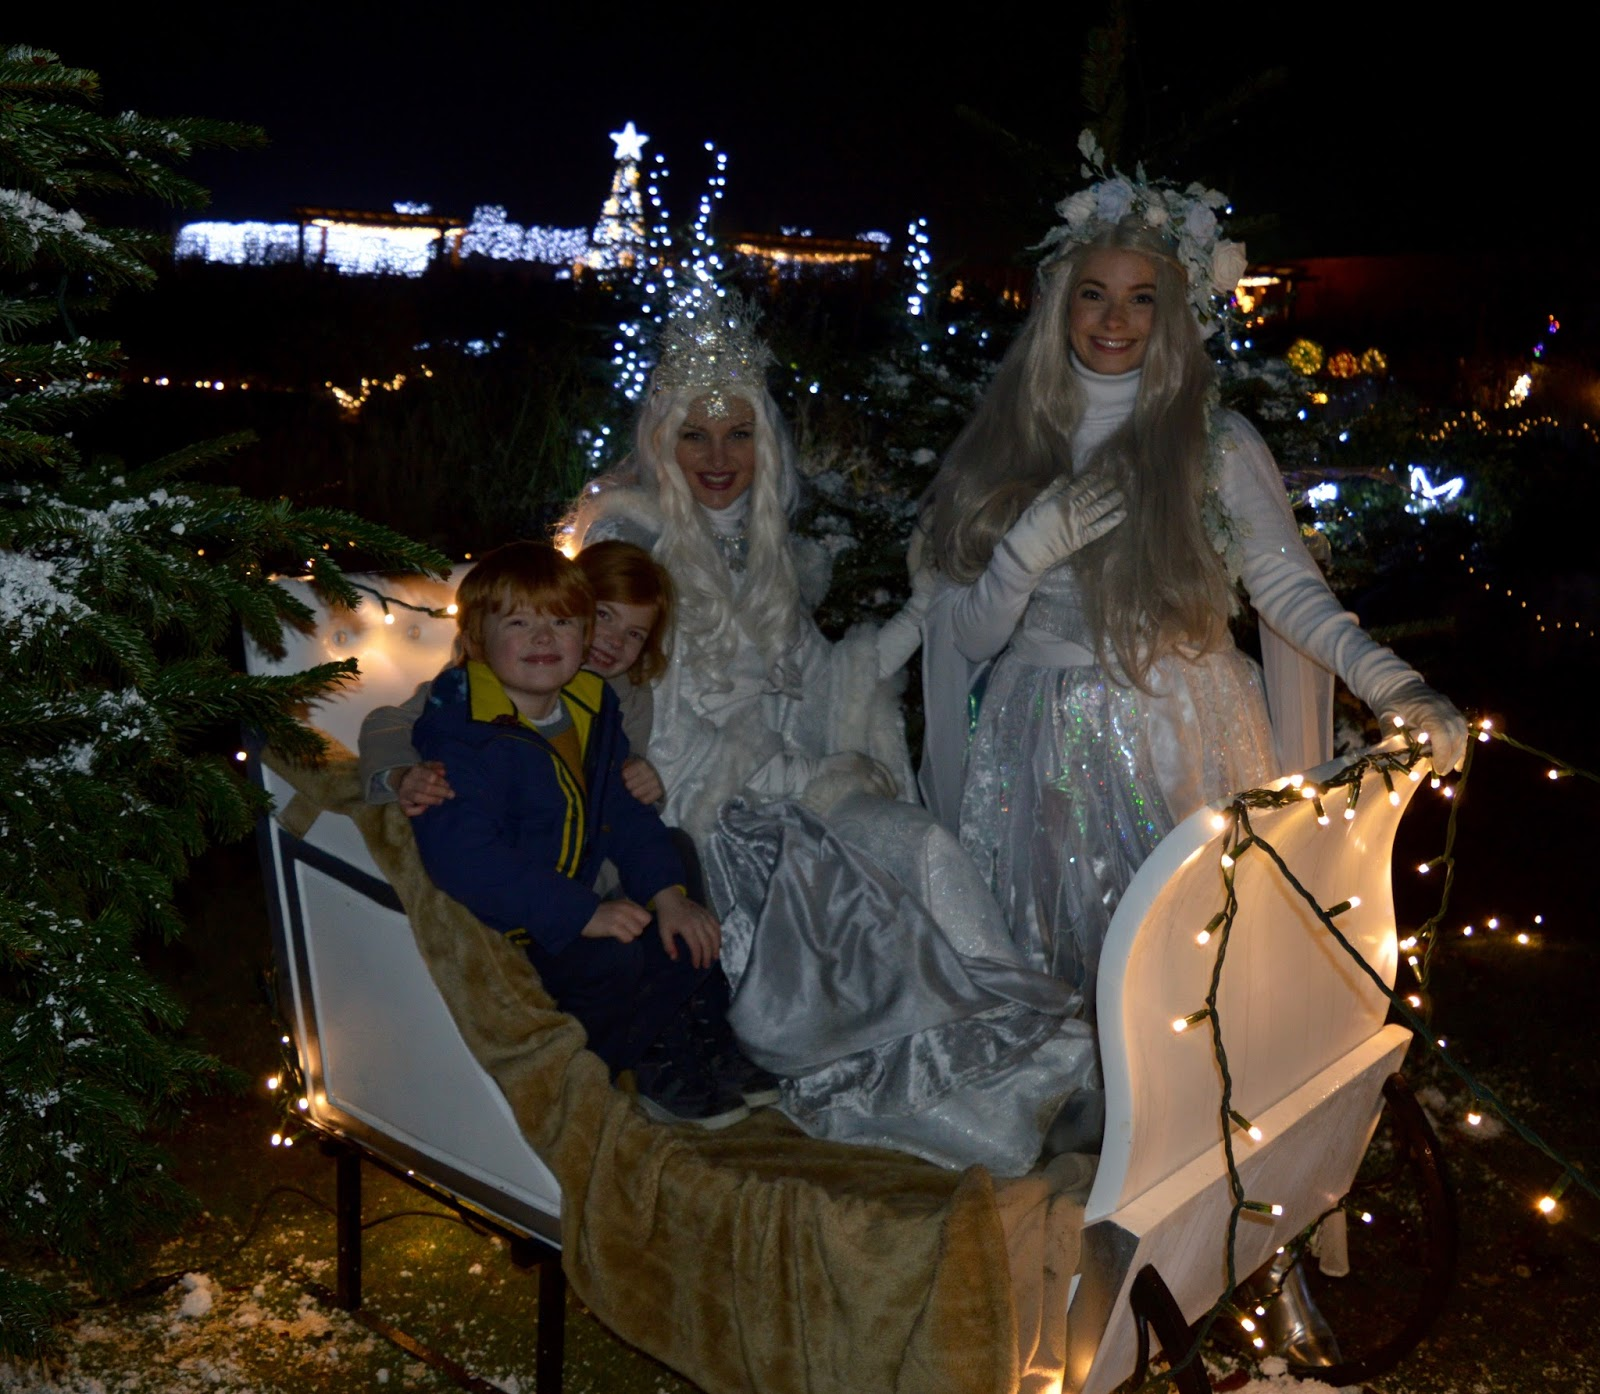 Winter Wonderland Christmas Light Show | A Wynyard Hall Garden Event - A Review - Meeting the Winter Fairy and Ice Queen in their sleigh